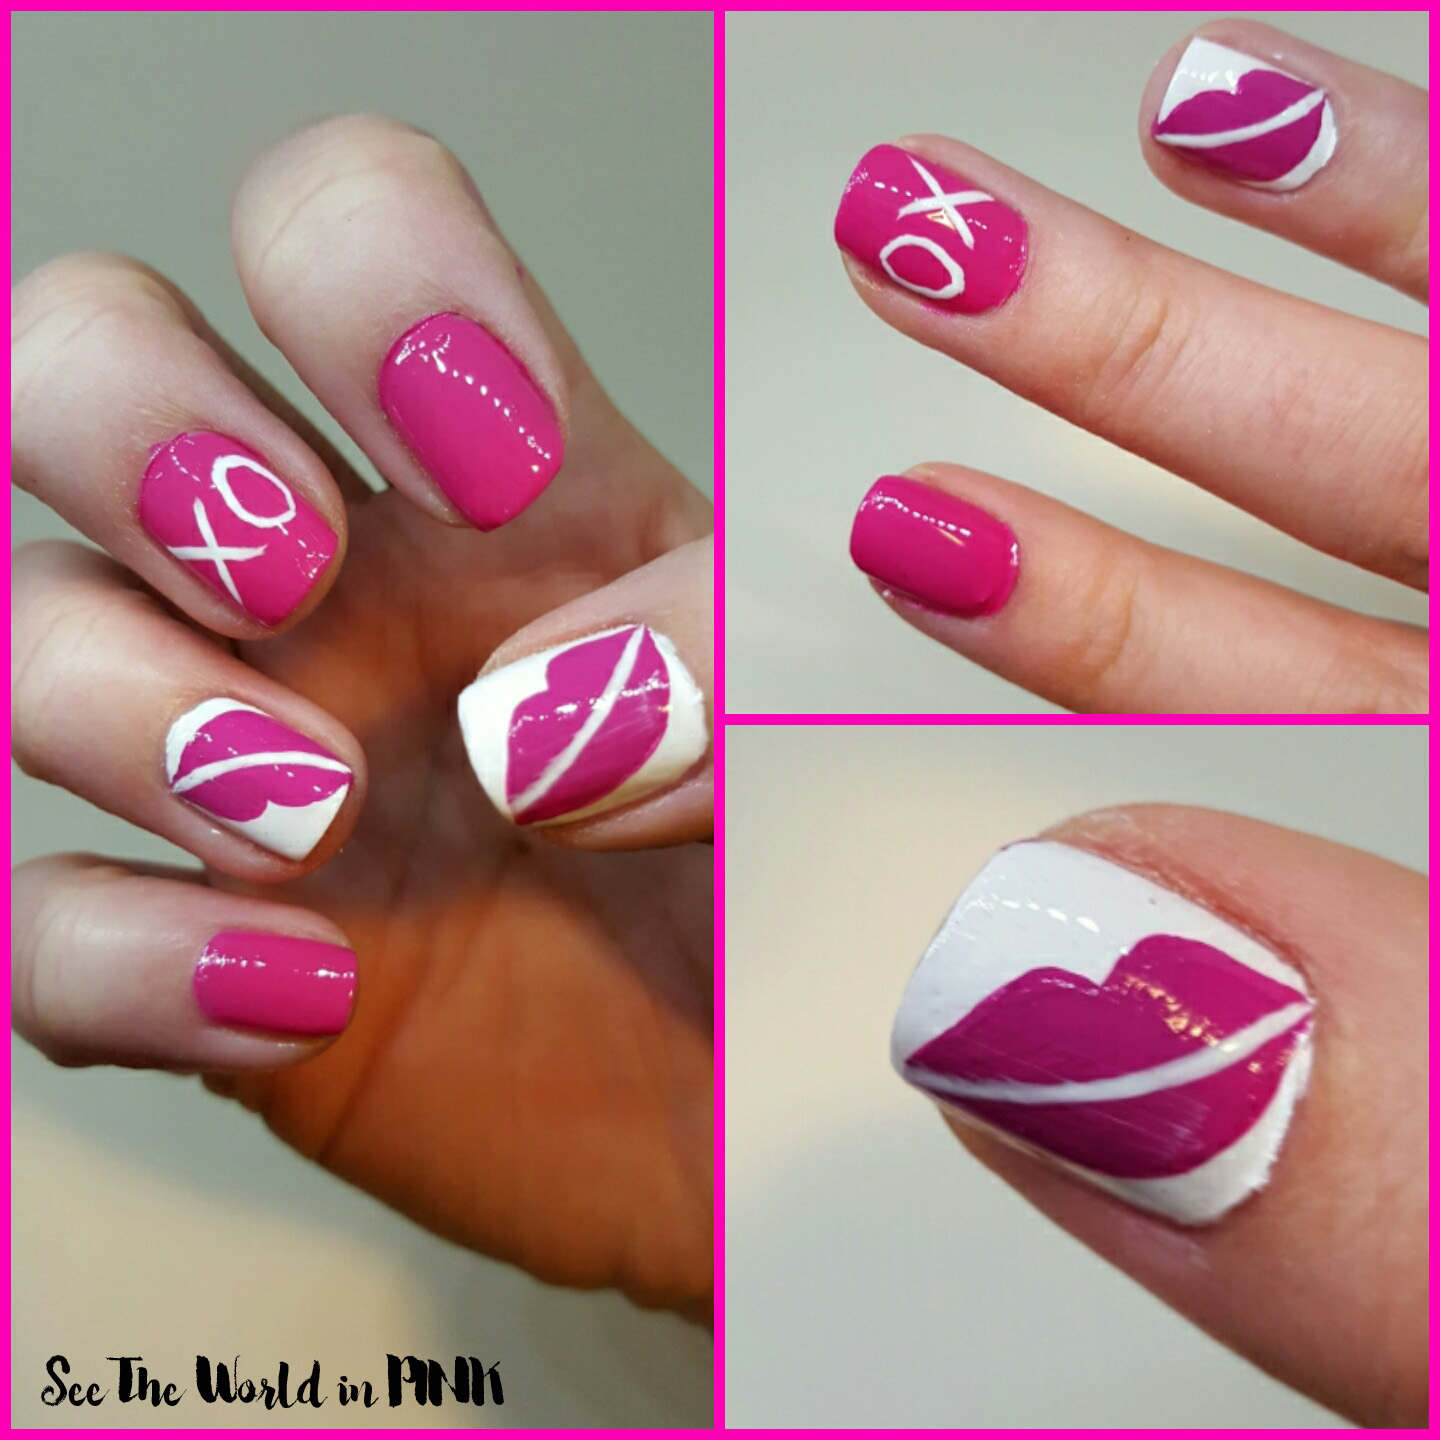 Manicure monday valentines nail art lips and kisses and valentines nail art lips and kisses prinsesfo Images